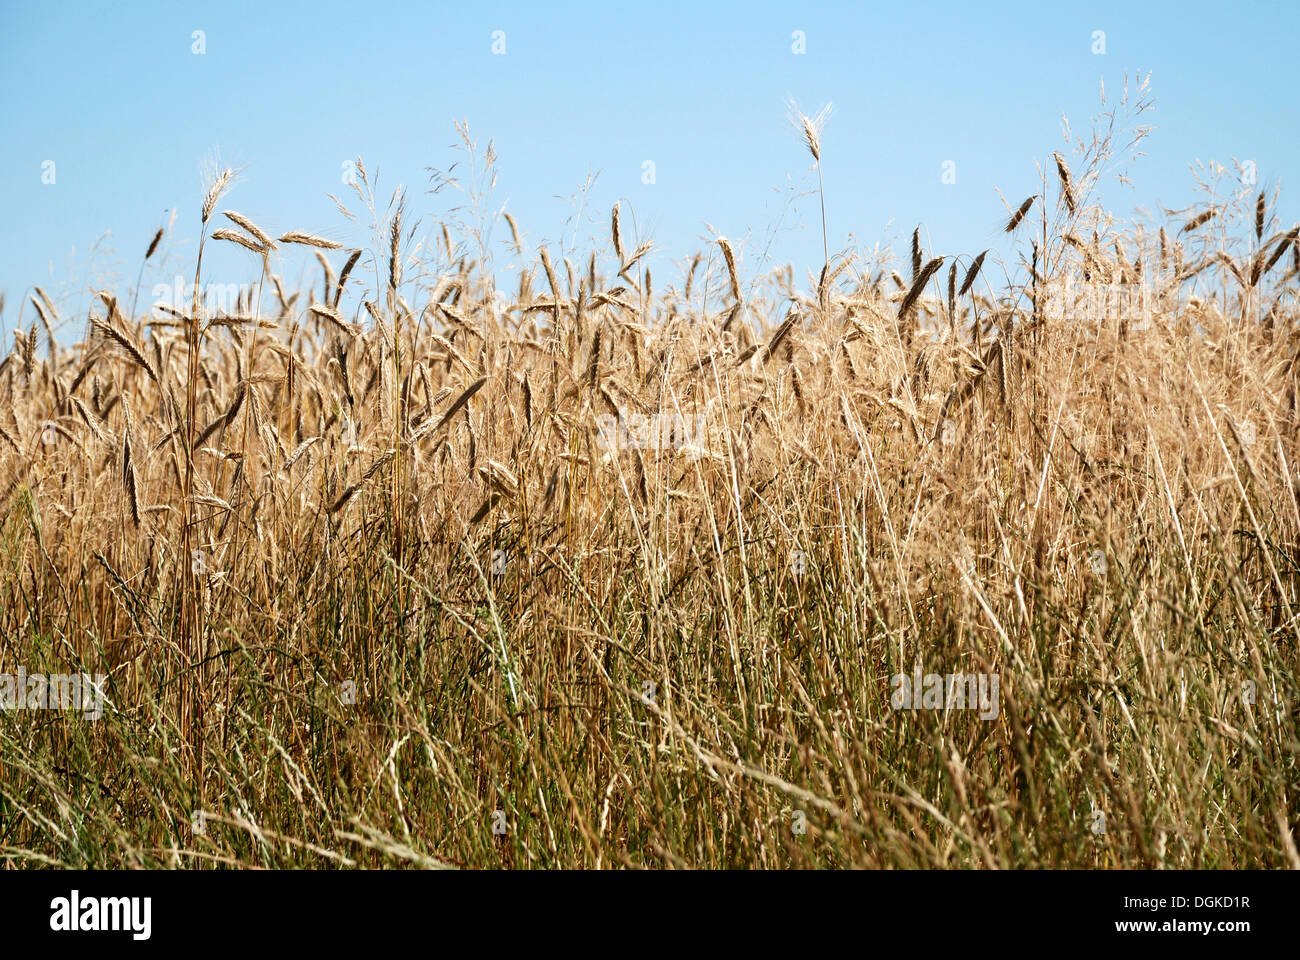 Field of rye in the district of Upper Havel near Gransee in Brandenburg. - Stock Image